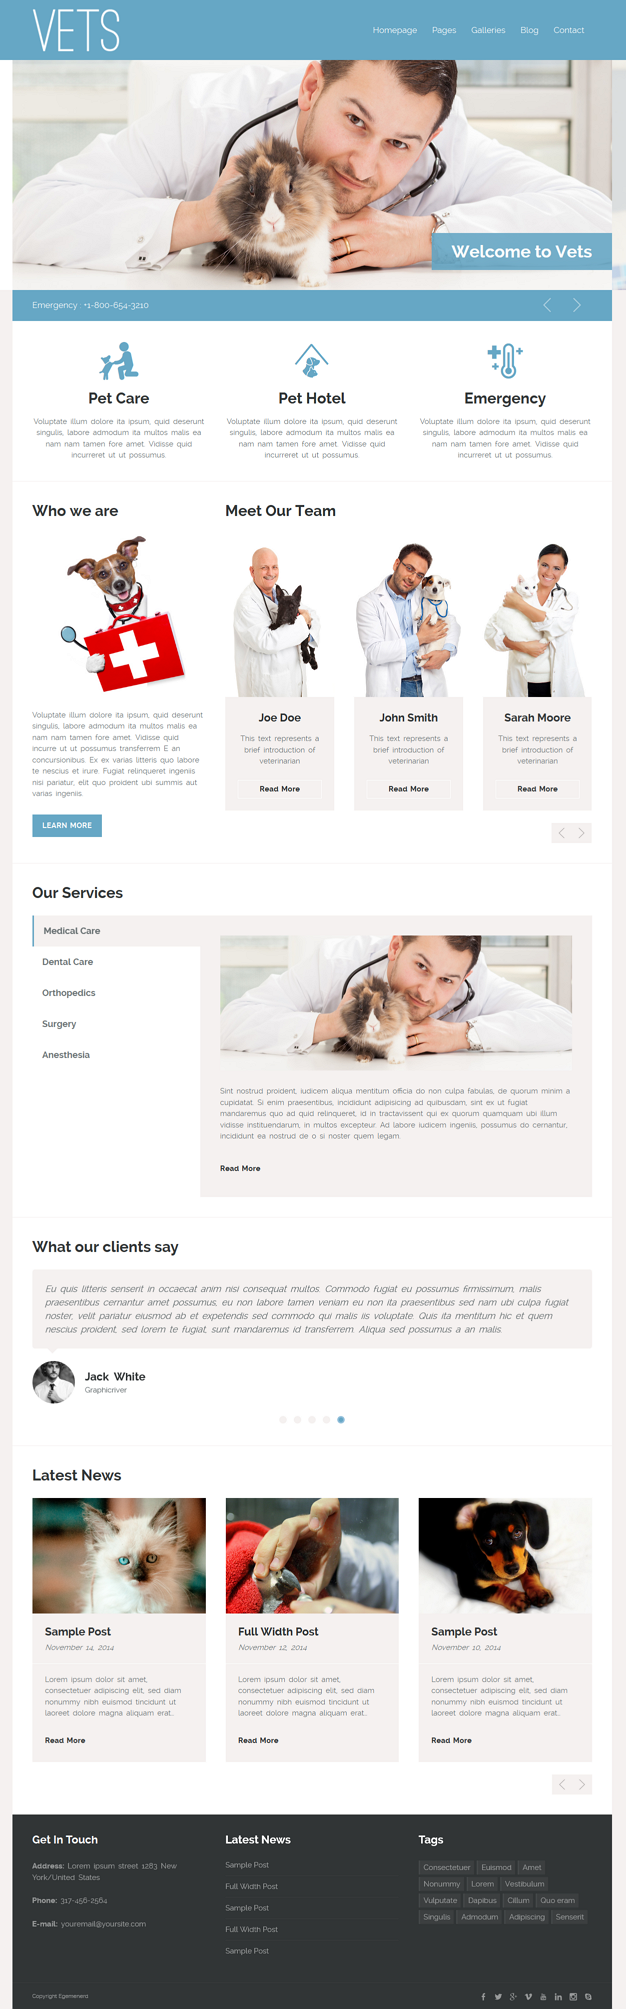 VETS is responsive WordPress theme for veterinary, health and medical websites.